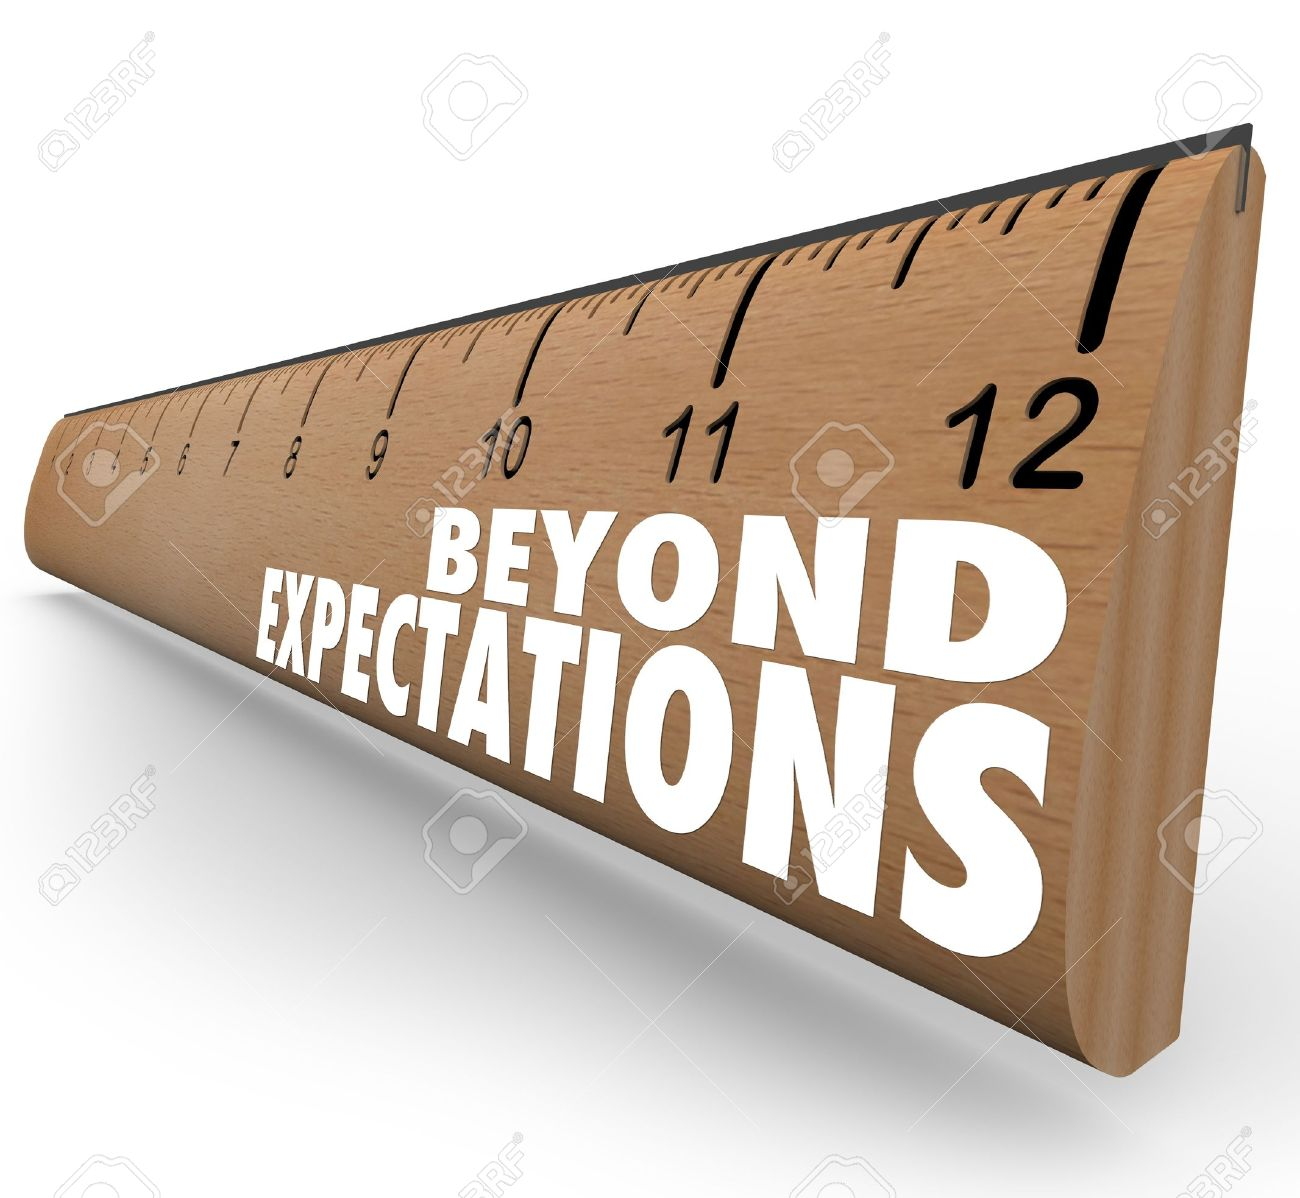 the words beyond expectations on a ruler to illustrate great stock photo the words beyond expectations on a ruler to illustrate great results good grades or other measurements met or surpassed in school